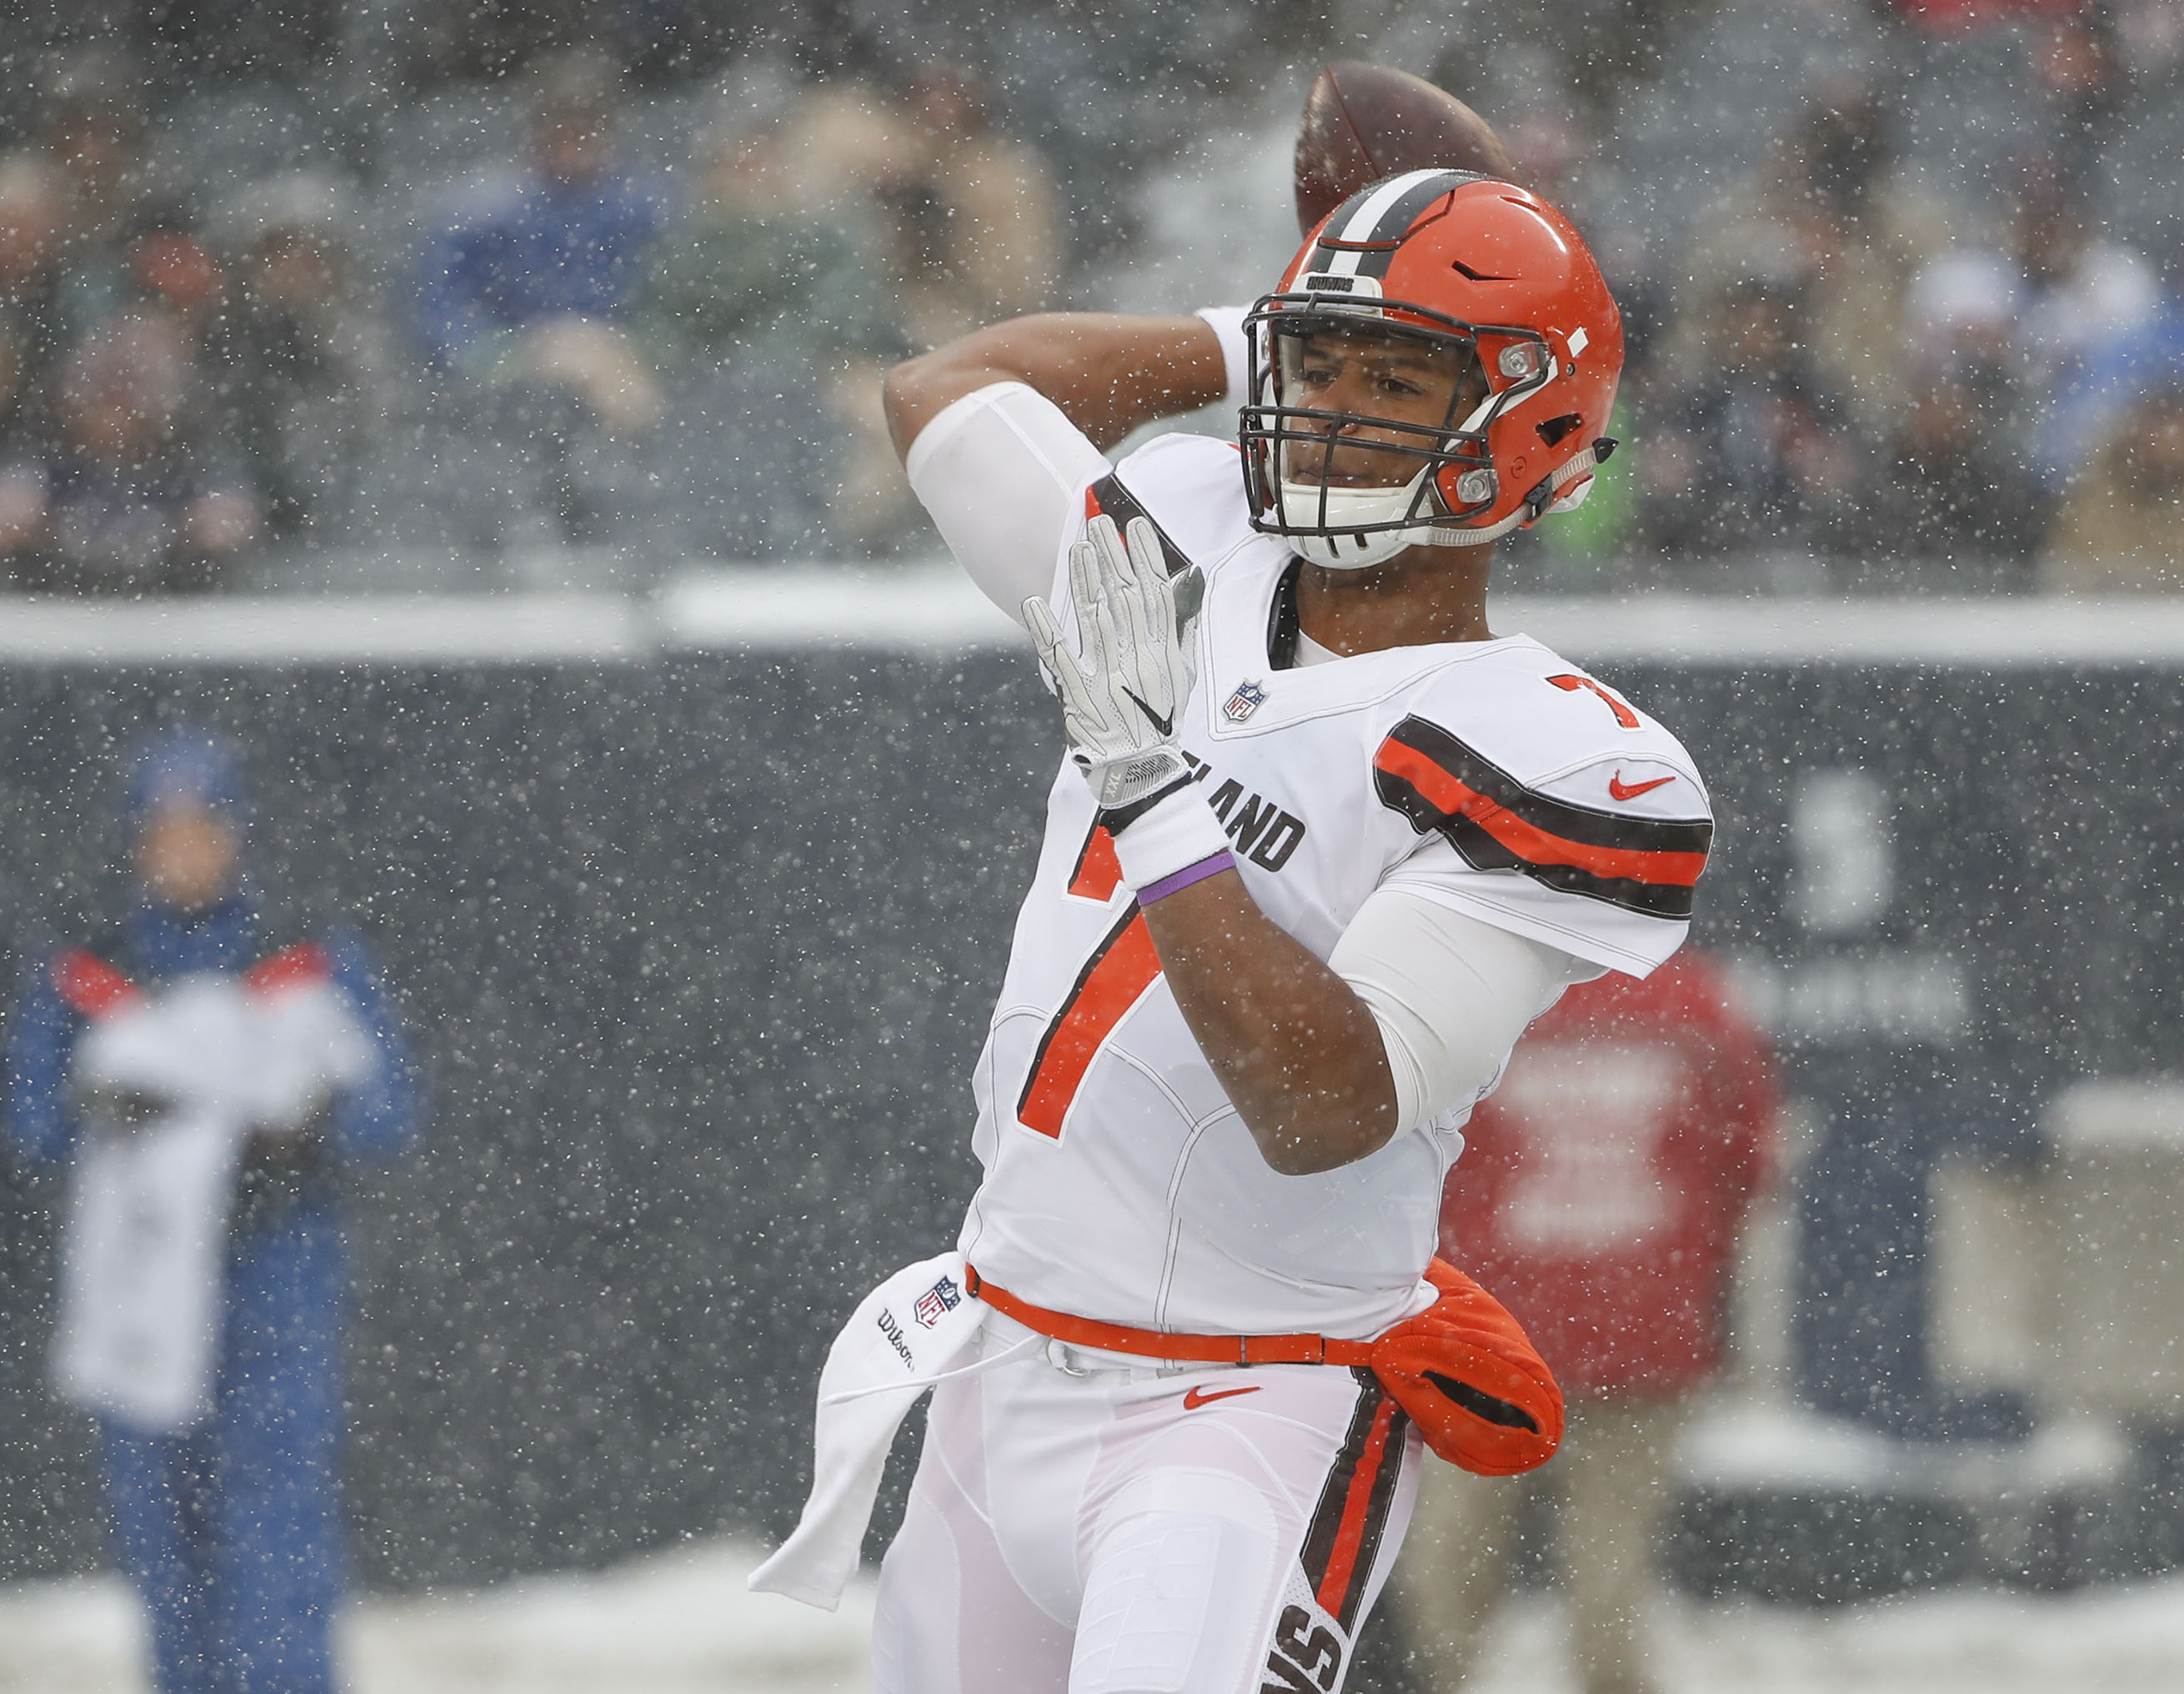 Browns complete perfectly imperfect season, finish 0-16